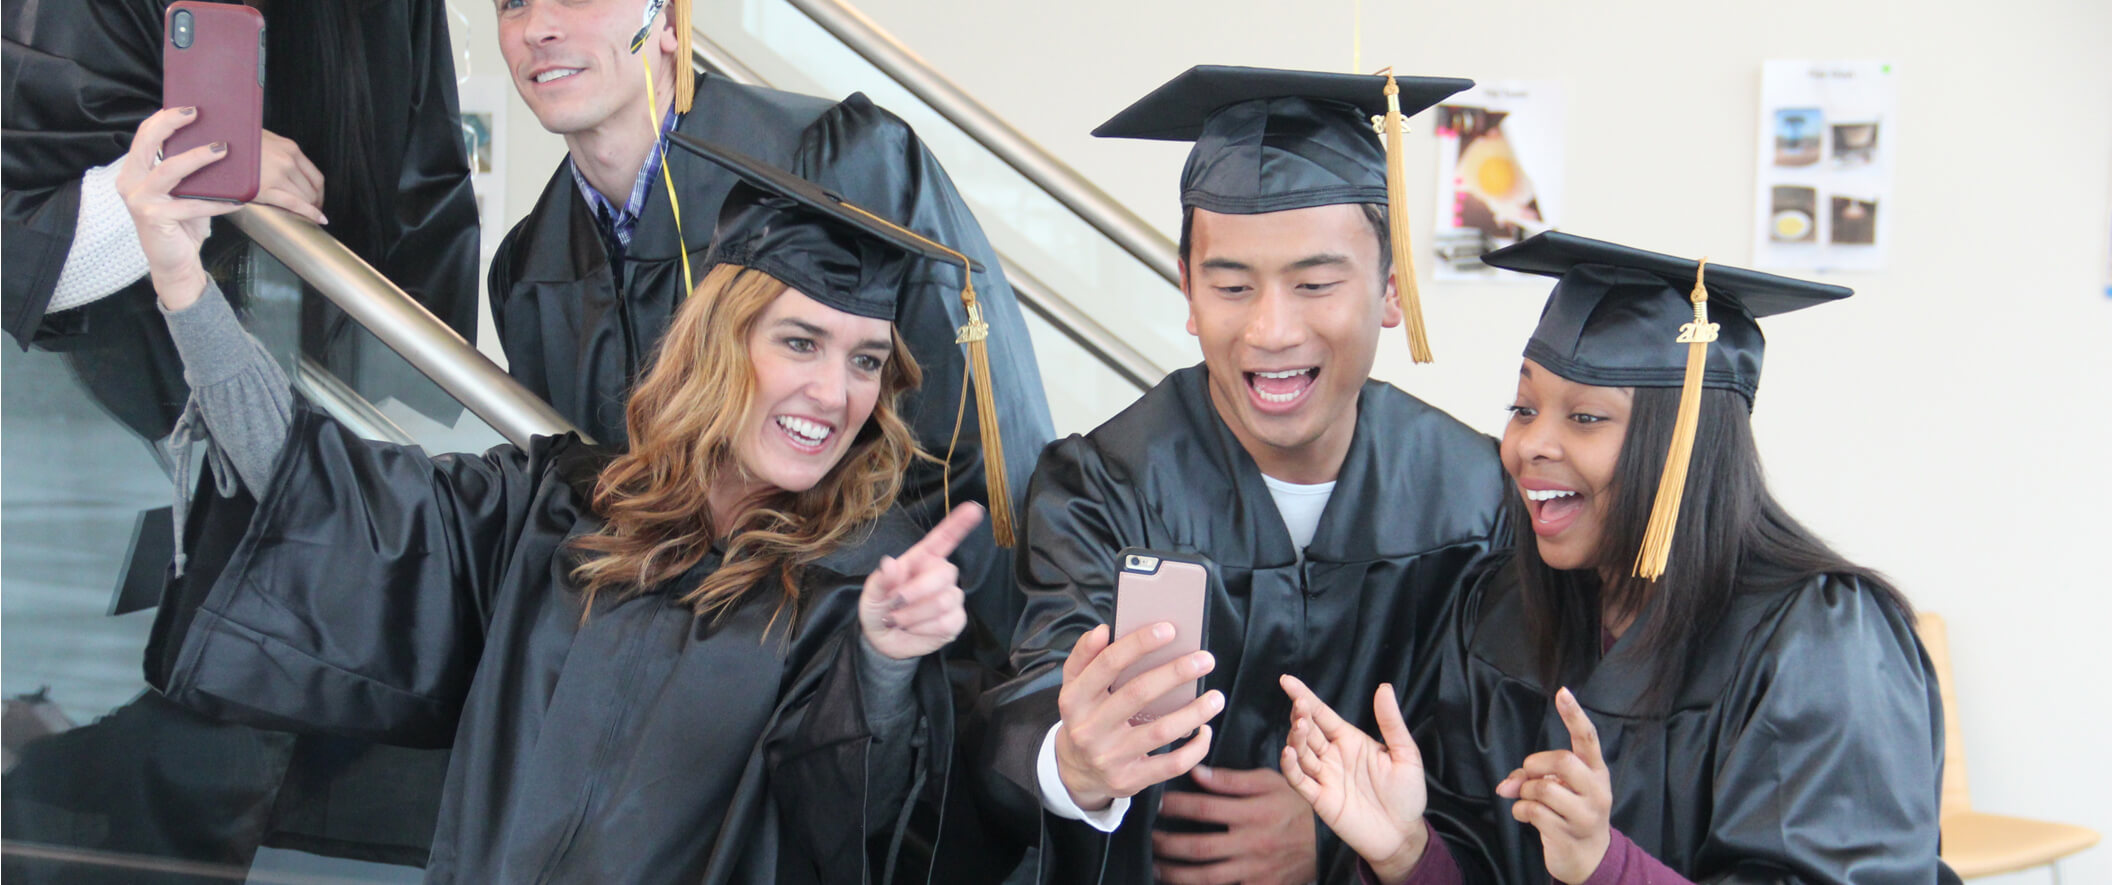 students on graduation day taking selfies